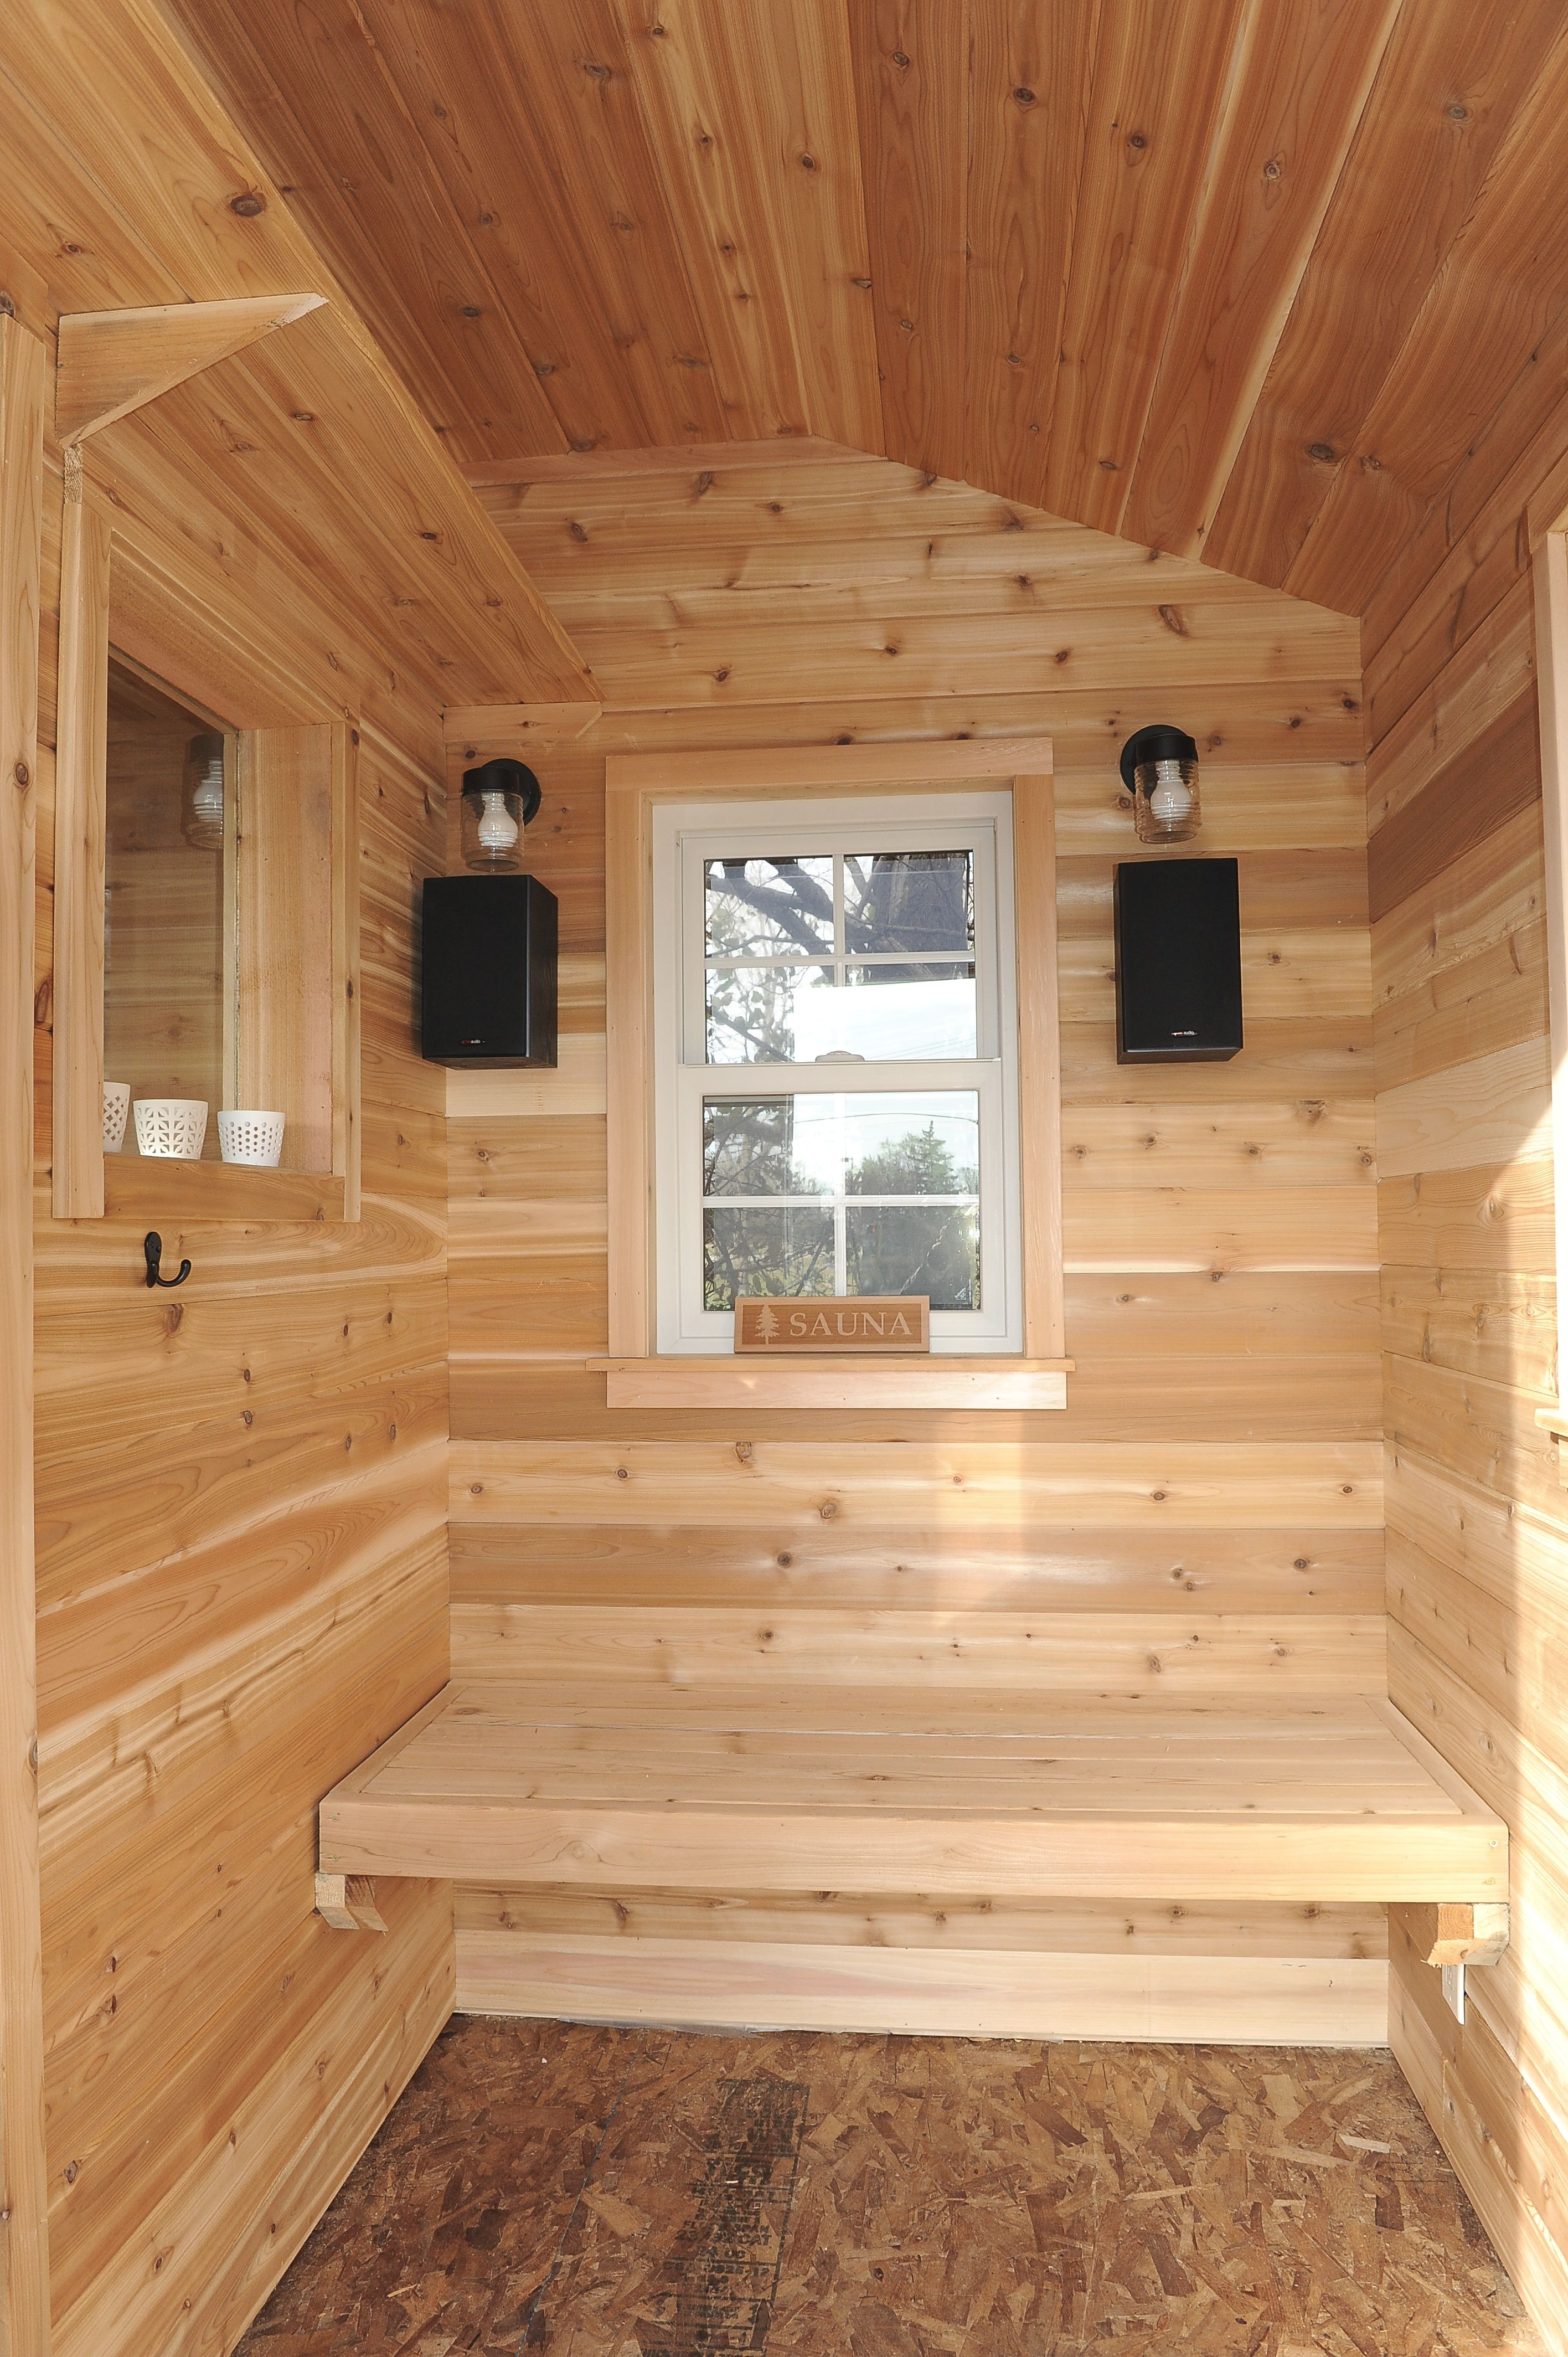 A Changing Room With Windows And Hooks And Space To Chill Out